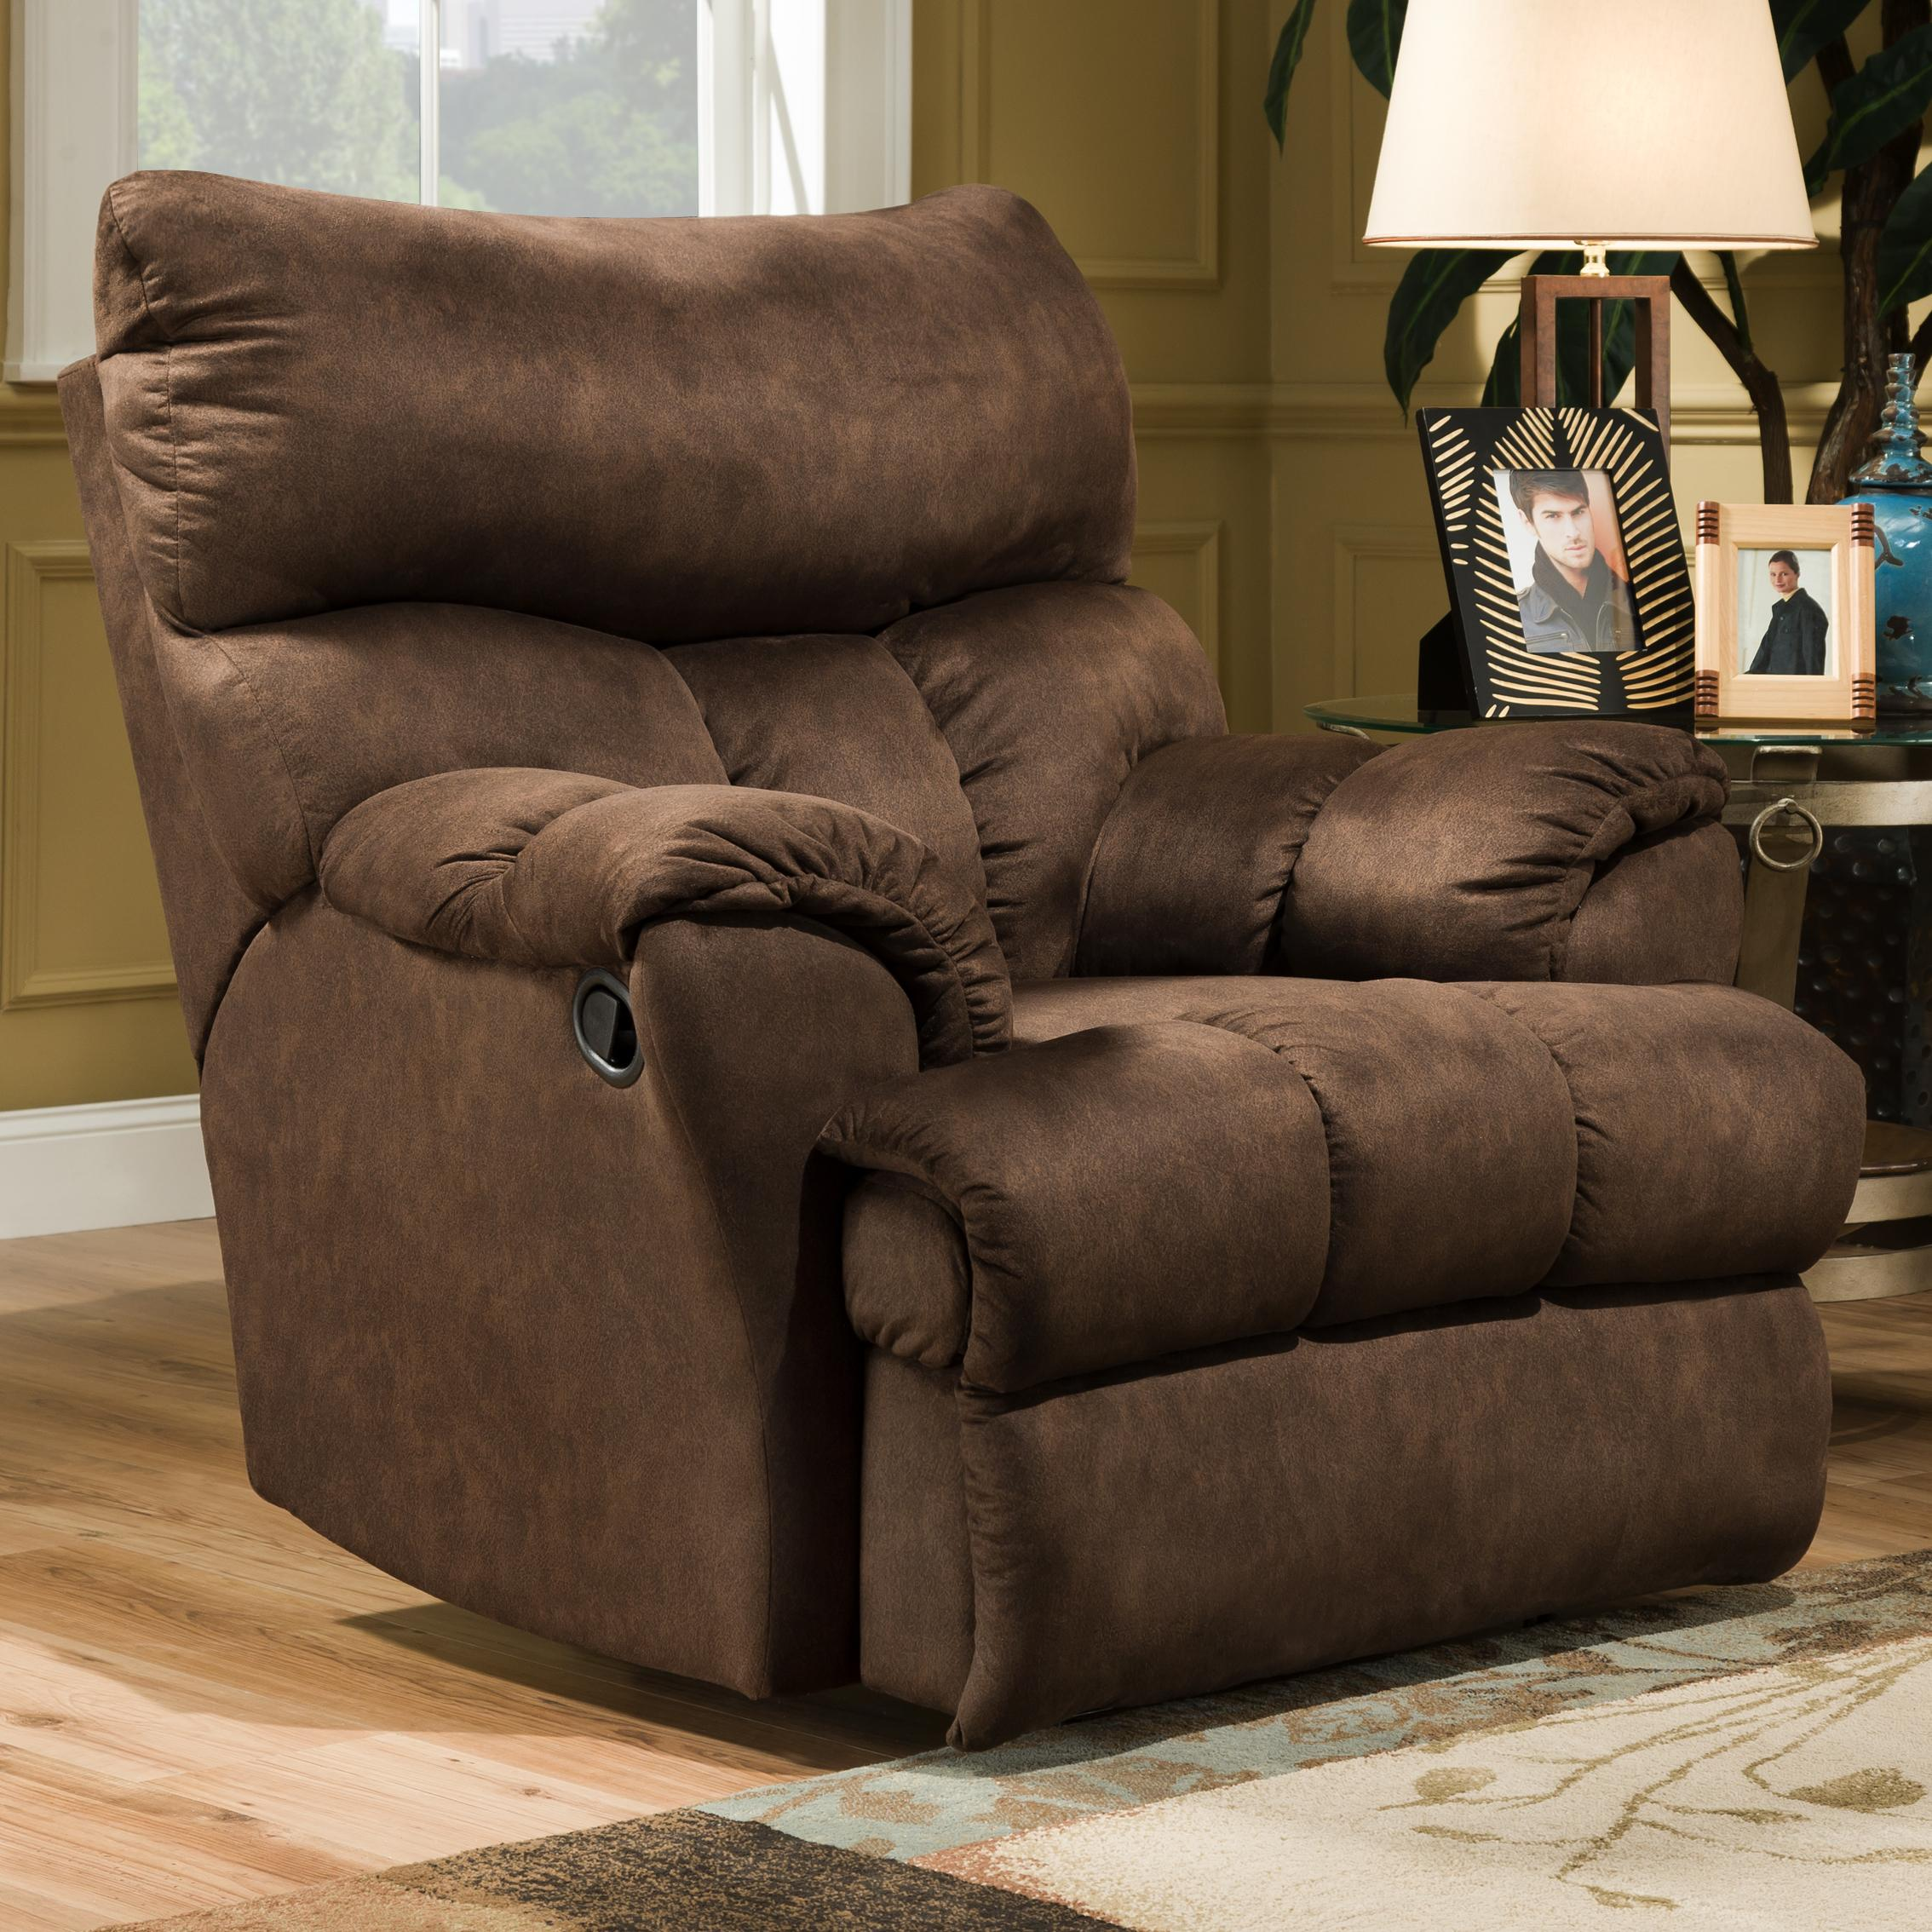 Southern Motion Re Fueler Casual Styled Rocker Recliner